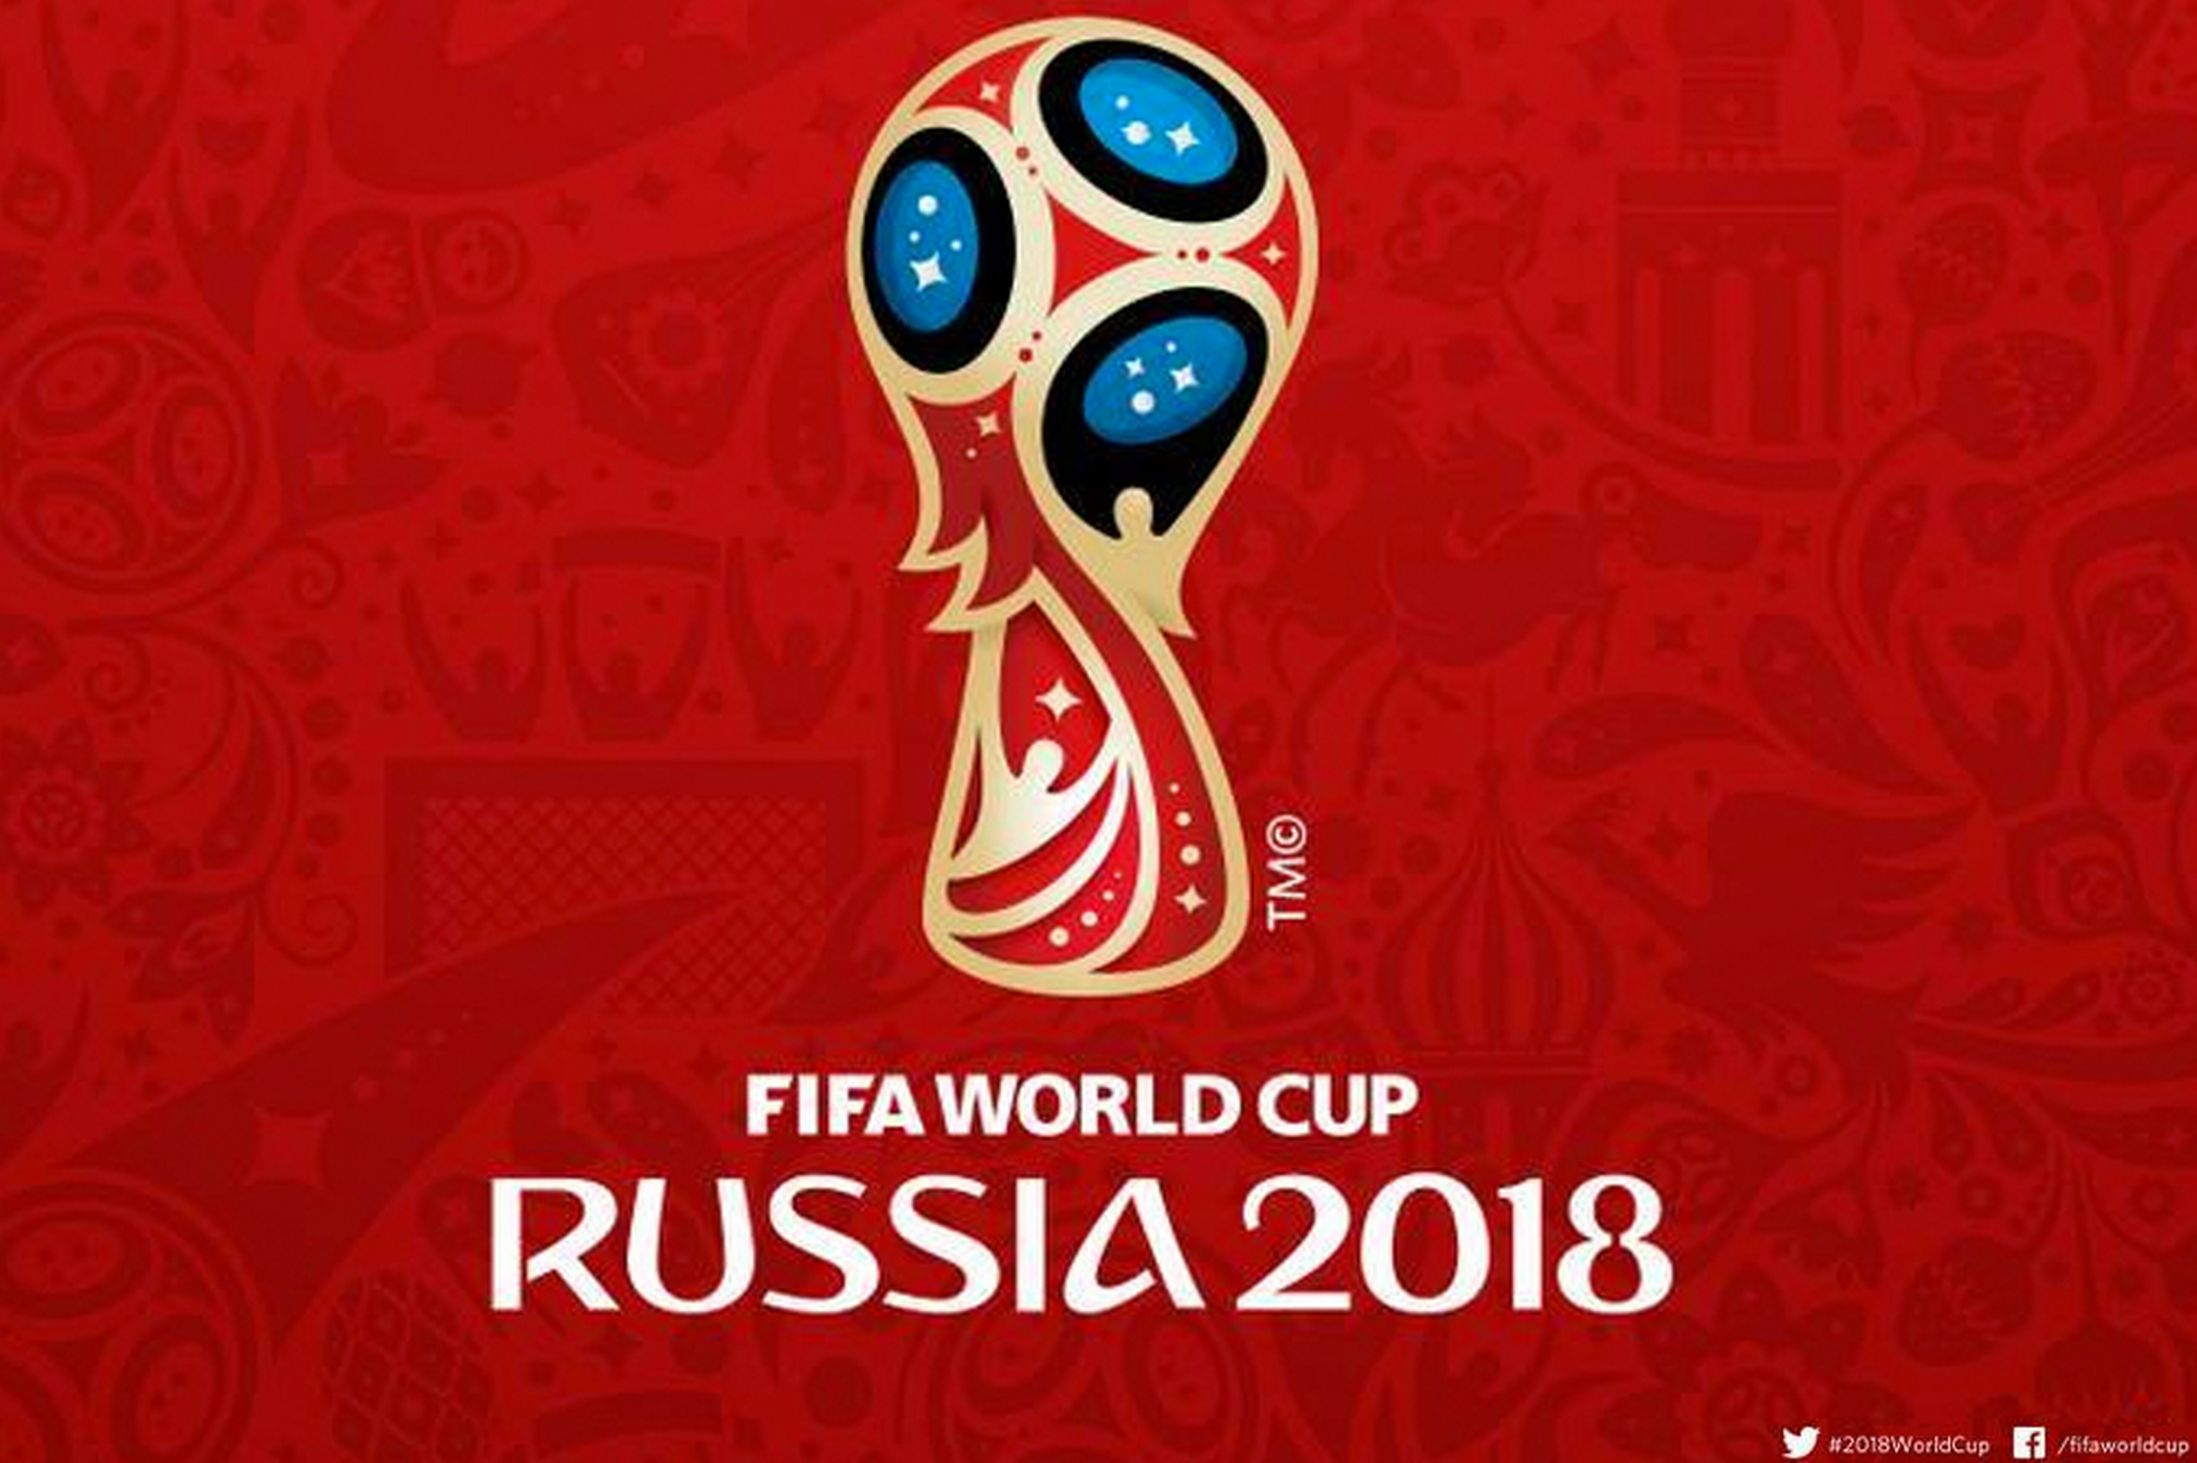 Russia To Lose Hosting 2018 FIFA World Cup?